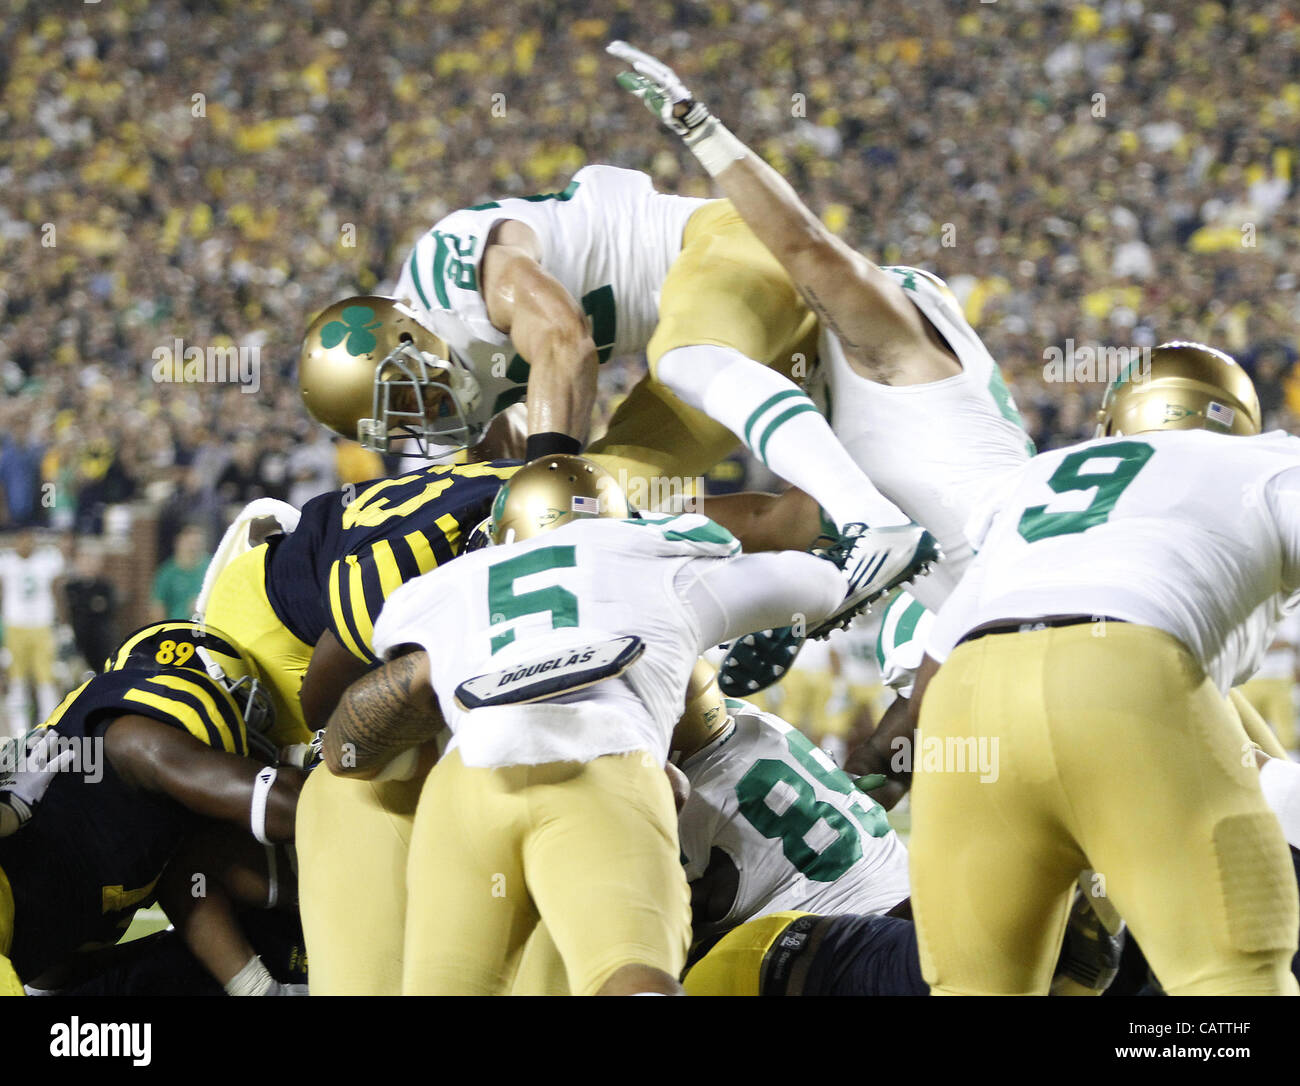 Sept. 10, 2011 - Ann Arbor, Michigan, USA - The Notre Dame Fighting Irish lost to the Michigan Wolverines in the Stock Photo